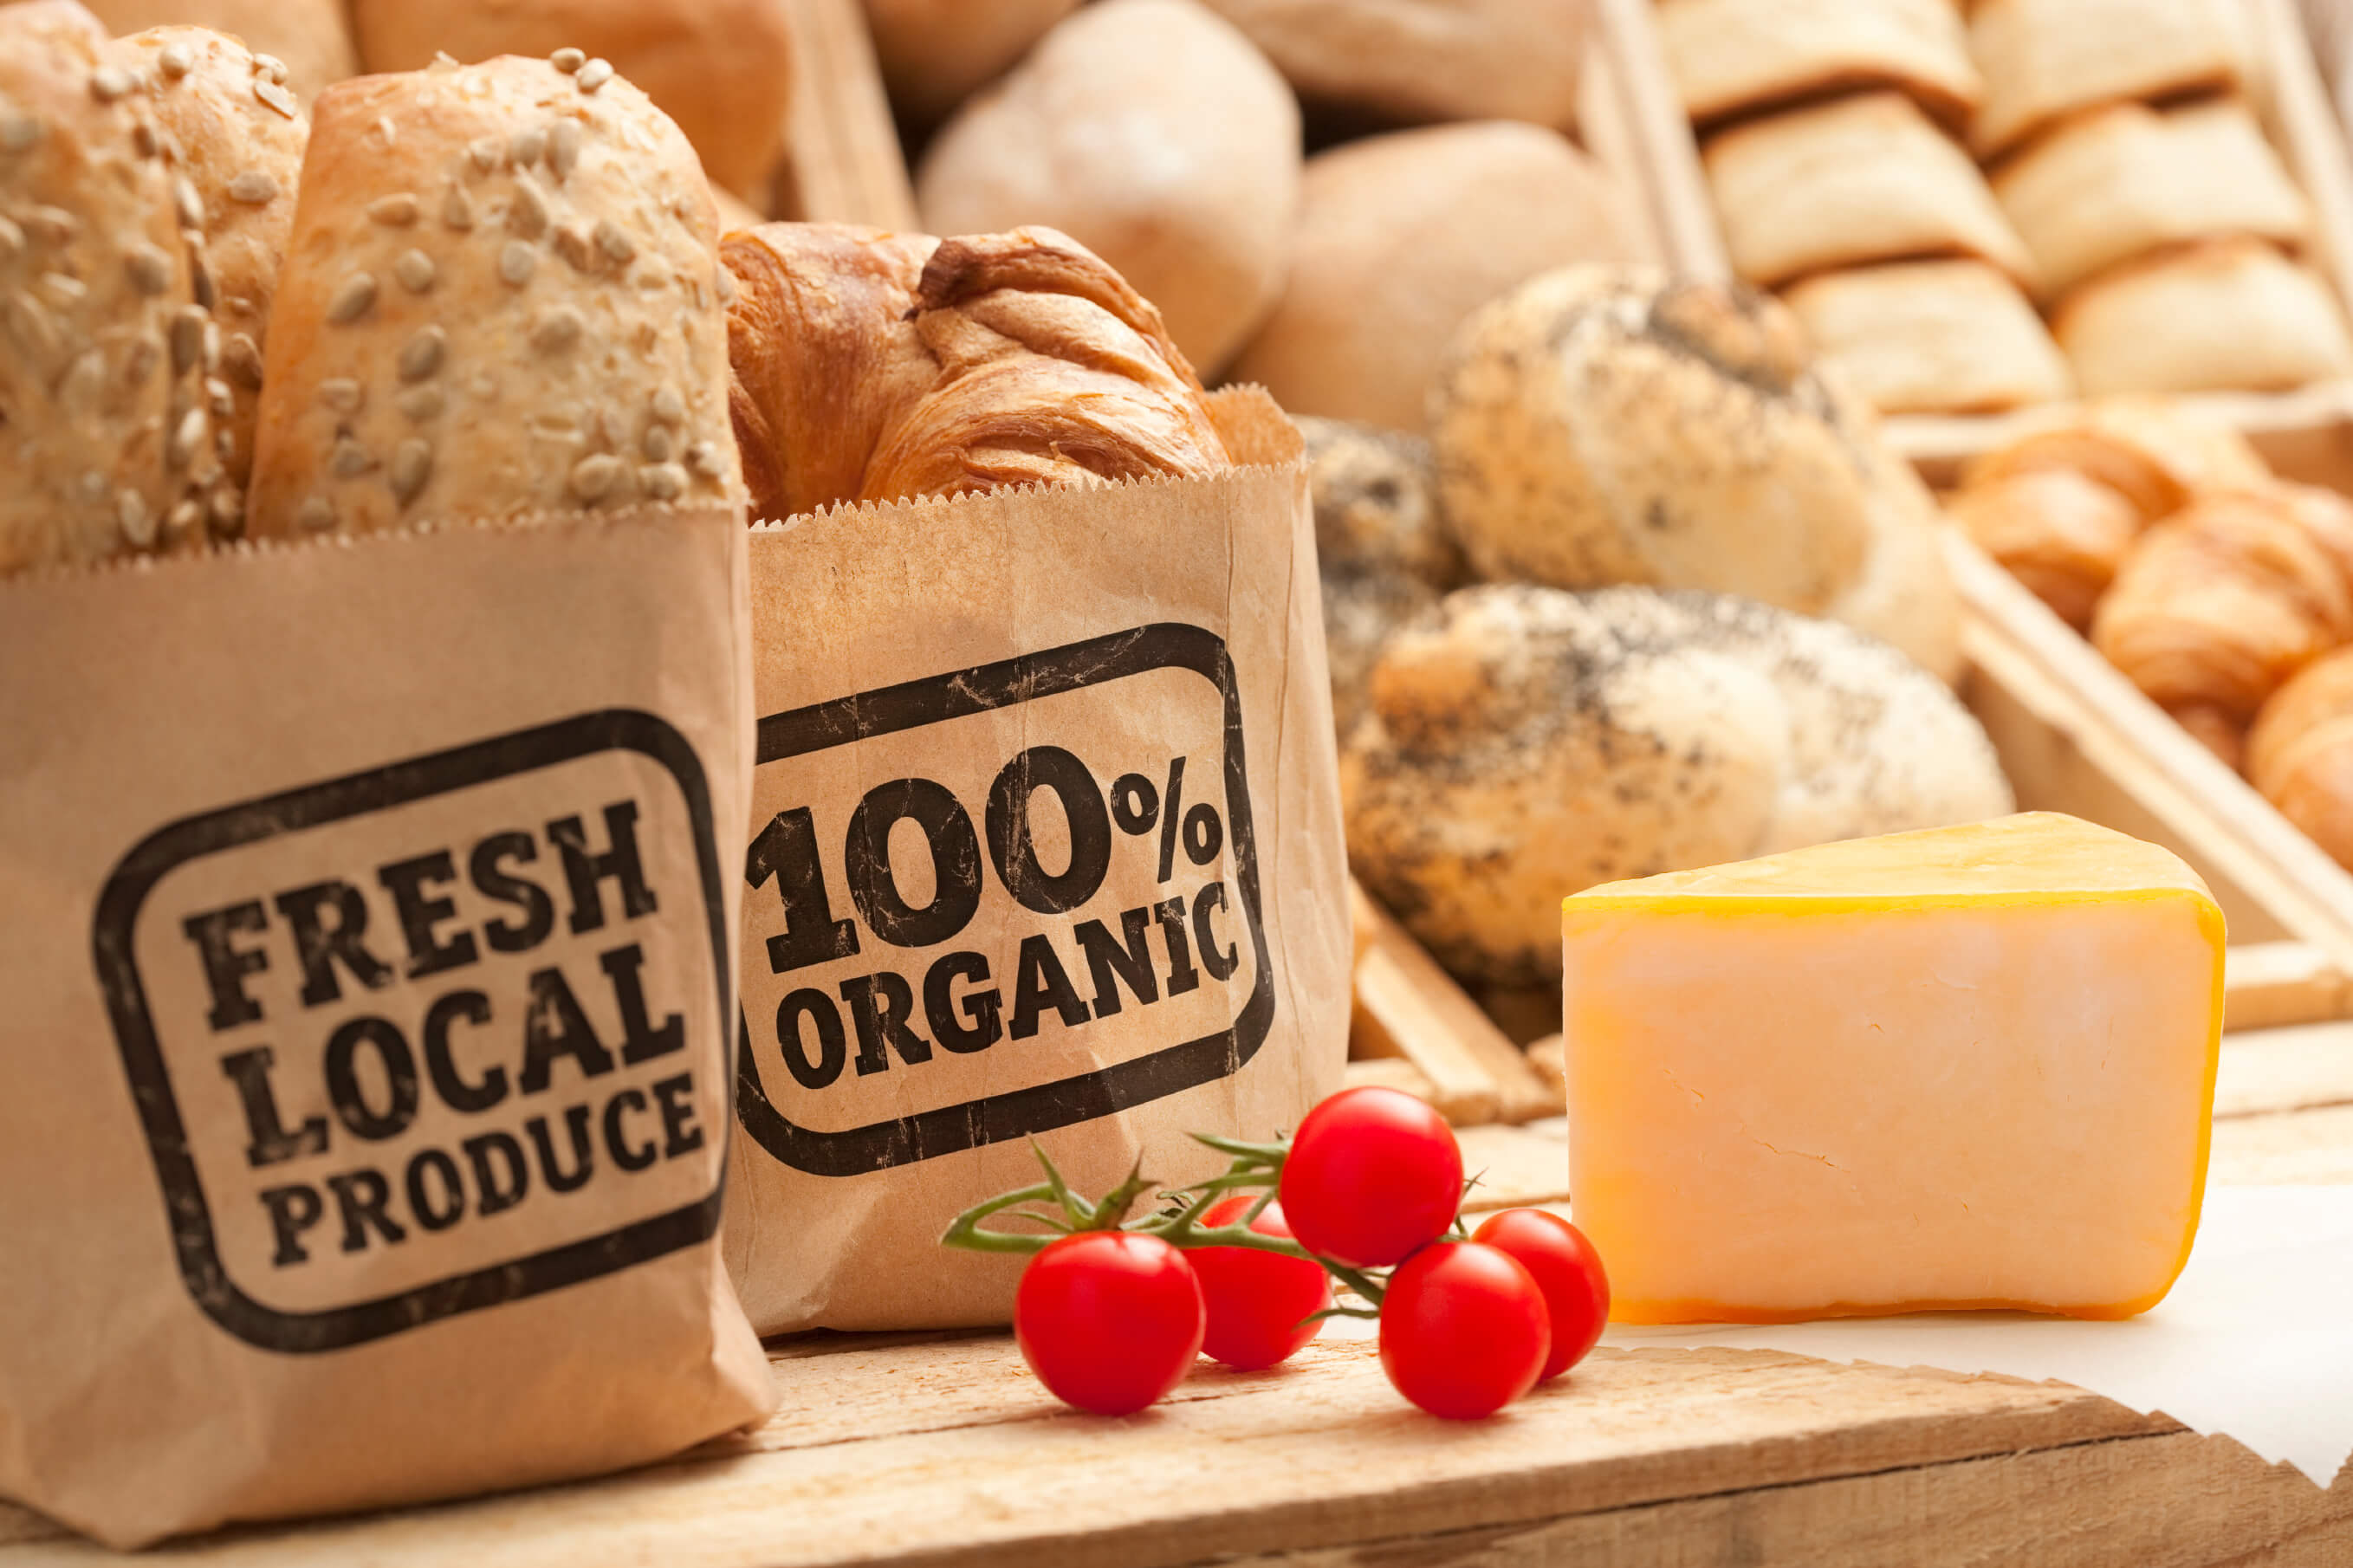 Bags of local produce on food stand